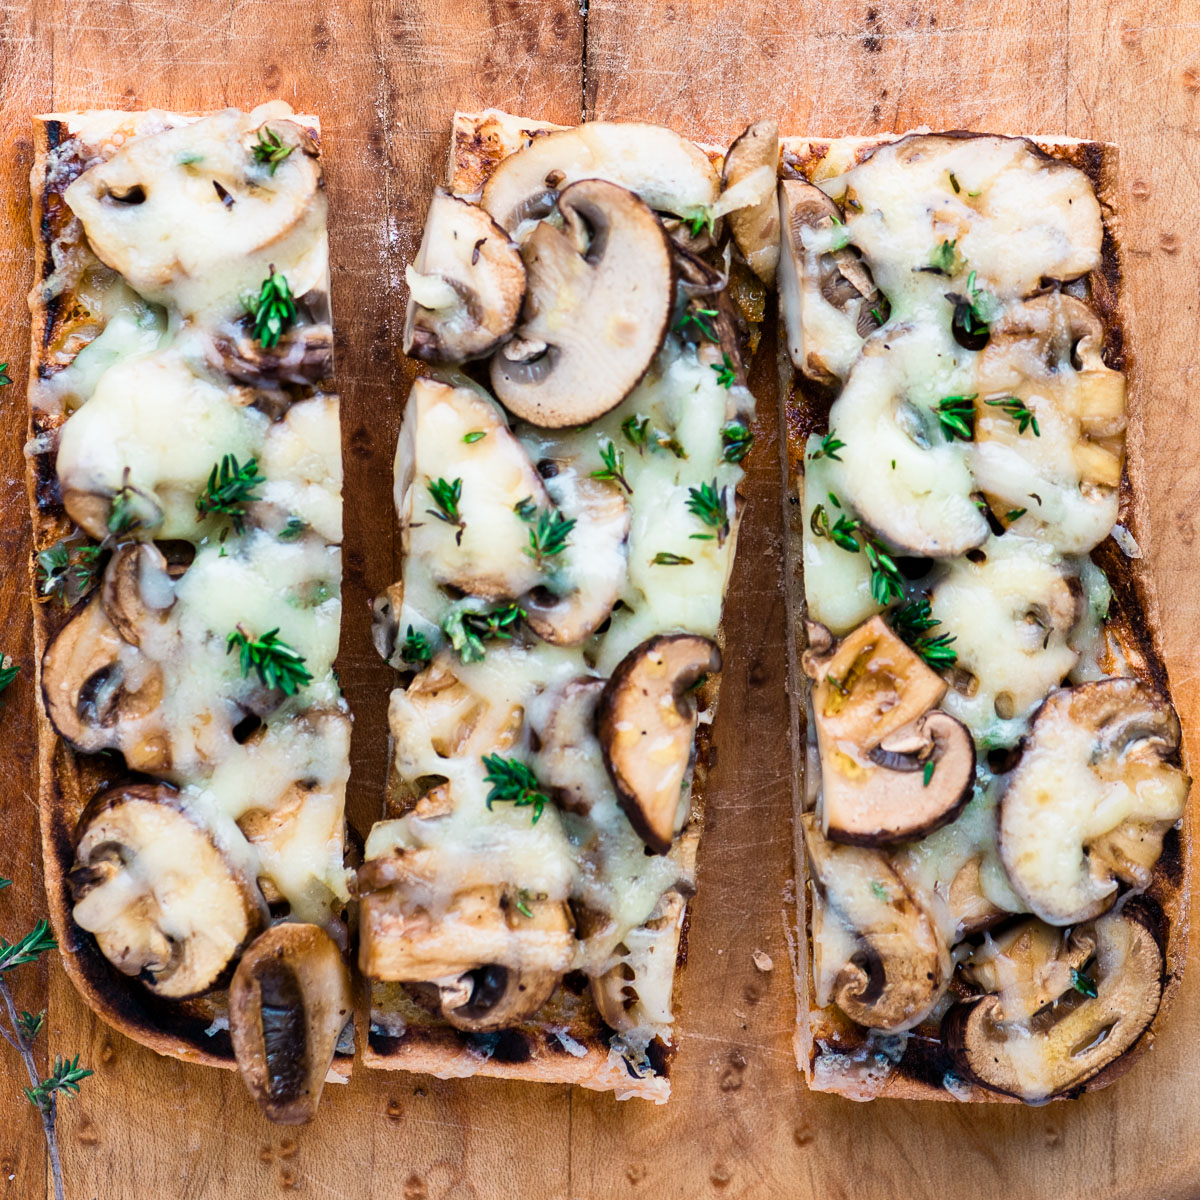 Slices of mushroom bruschetta on a wooden board